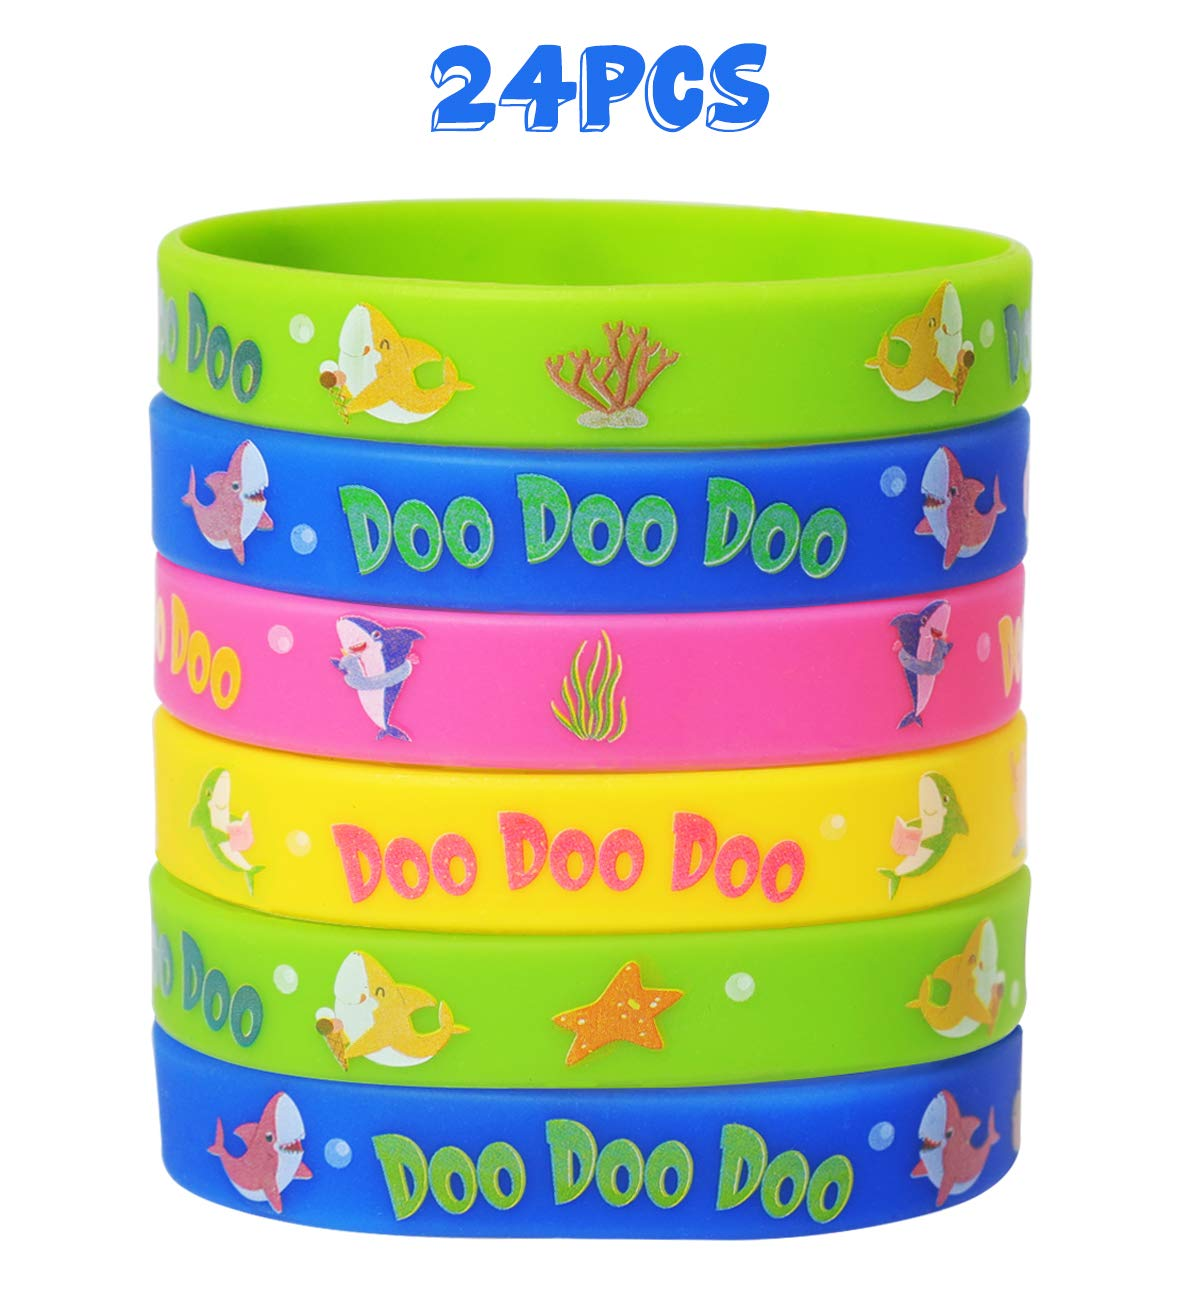 Baby Shark Rubber Wristbands Bracelets - Kids Birthday Party Favors Supplies Gift Decorations by Your Little Lovely